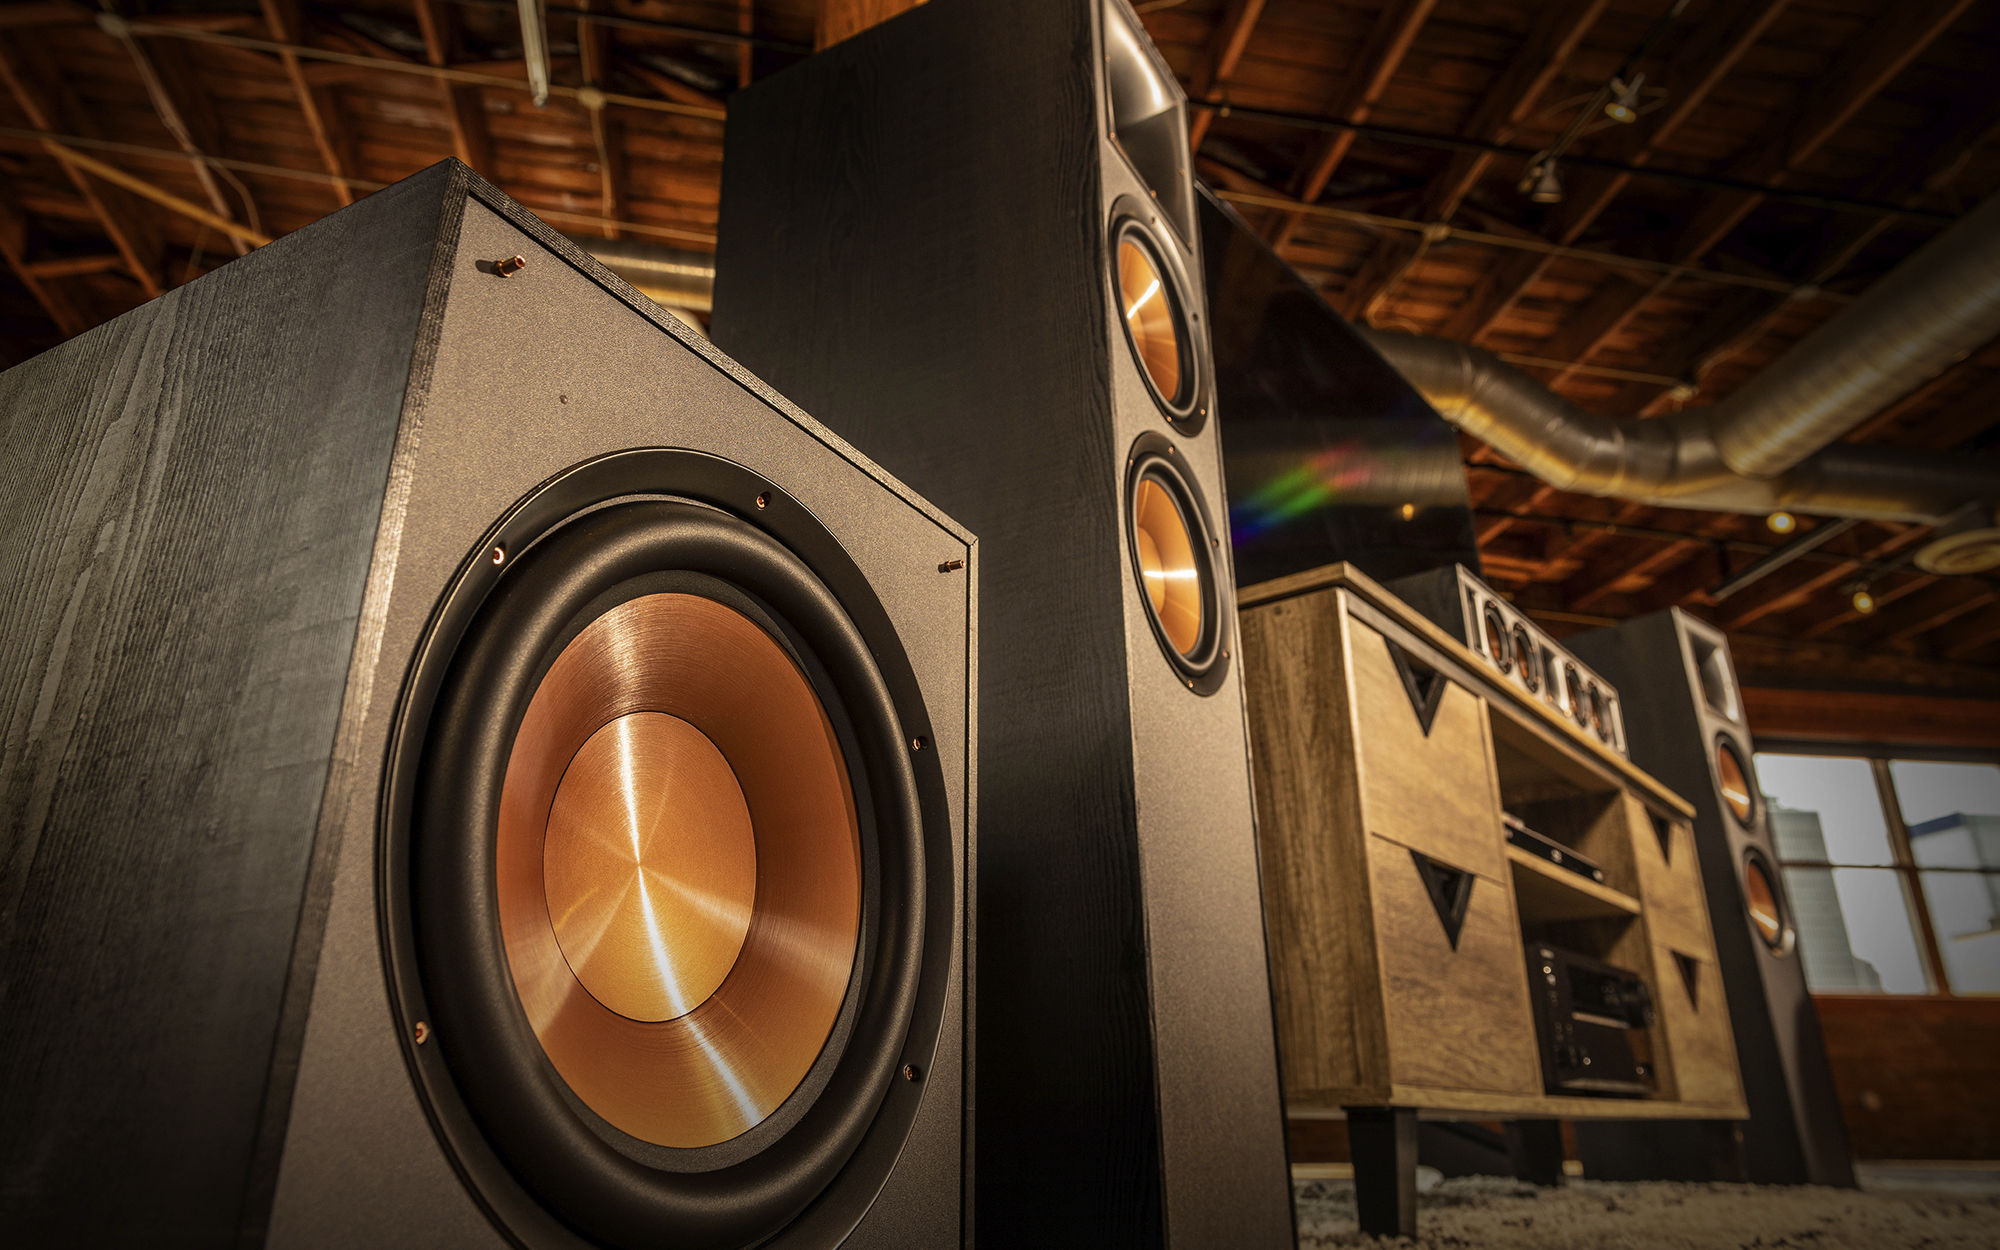 Close up of a Klipsch speaker system surrounding a tv